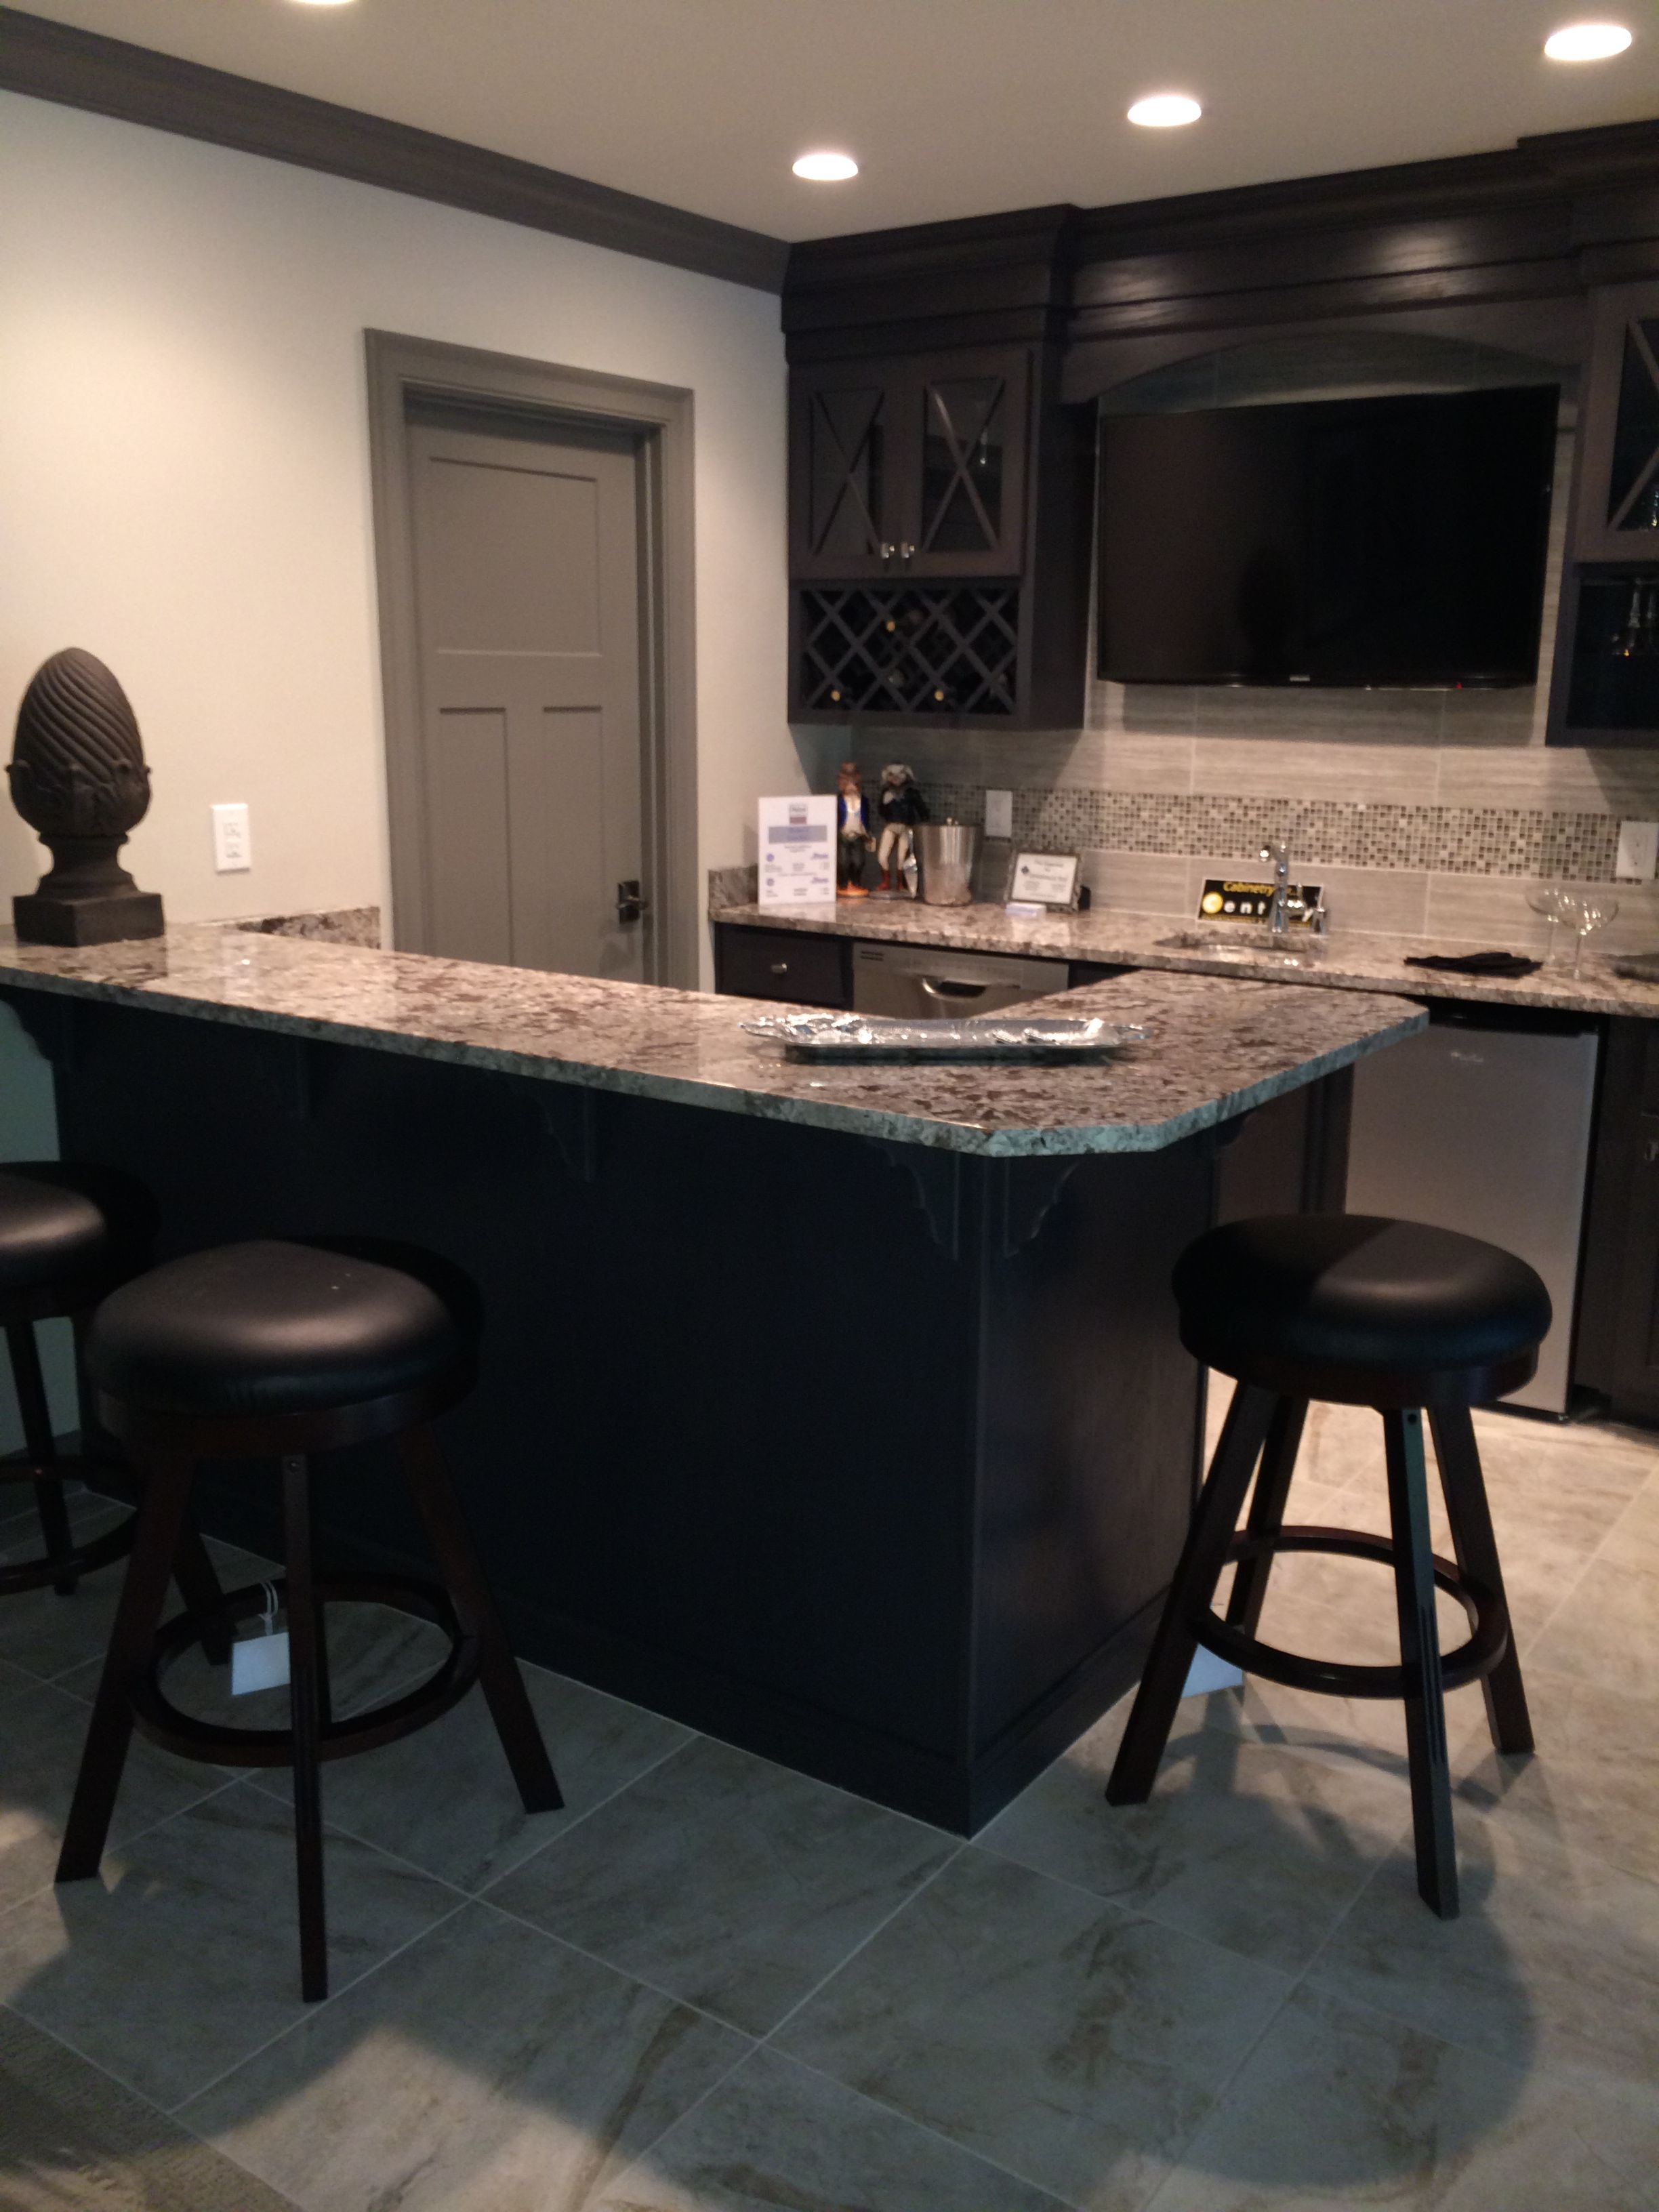 Modern Kitchen Granite Countertops bianco antico granite countertops with espresso cabinets and grey